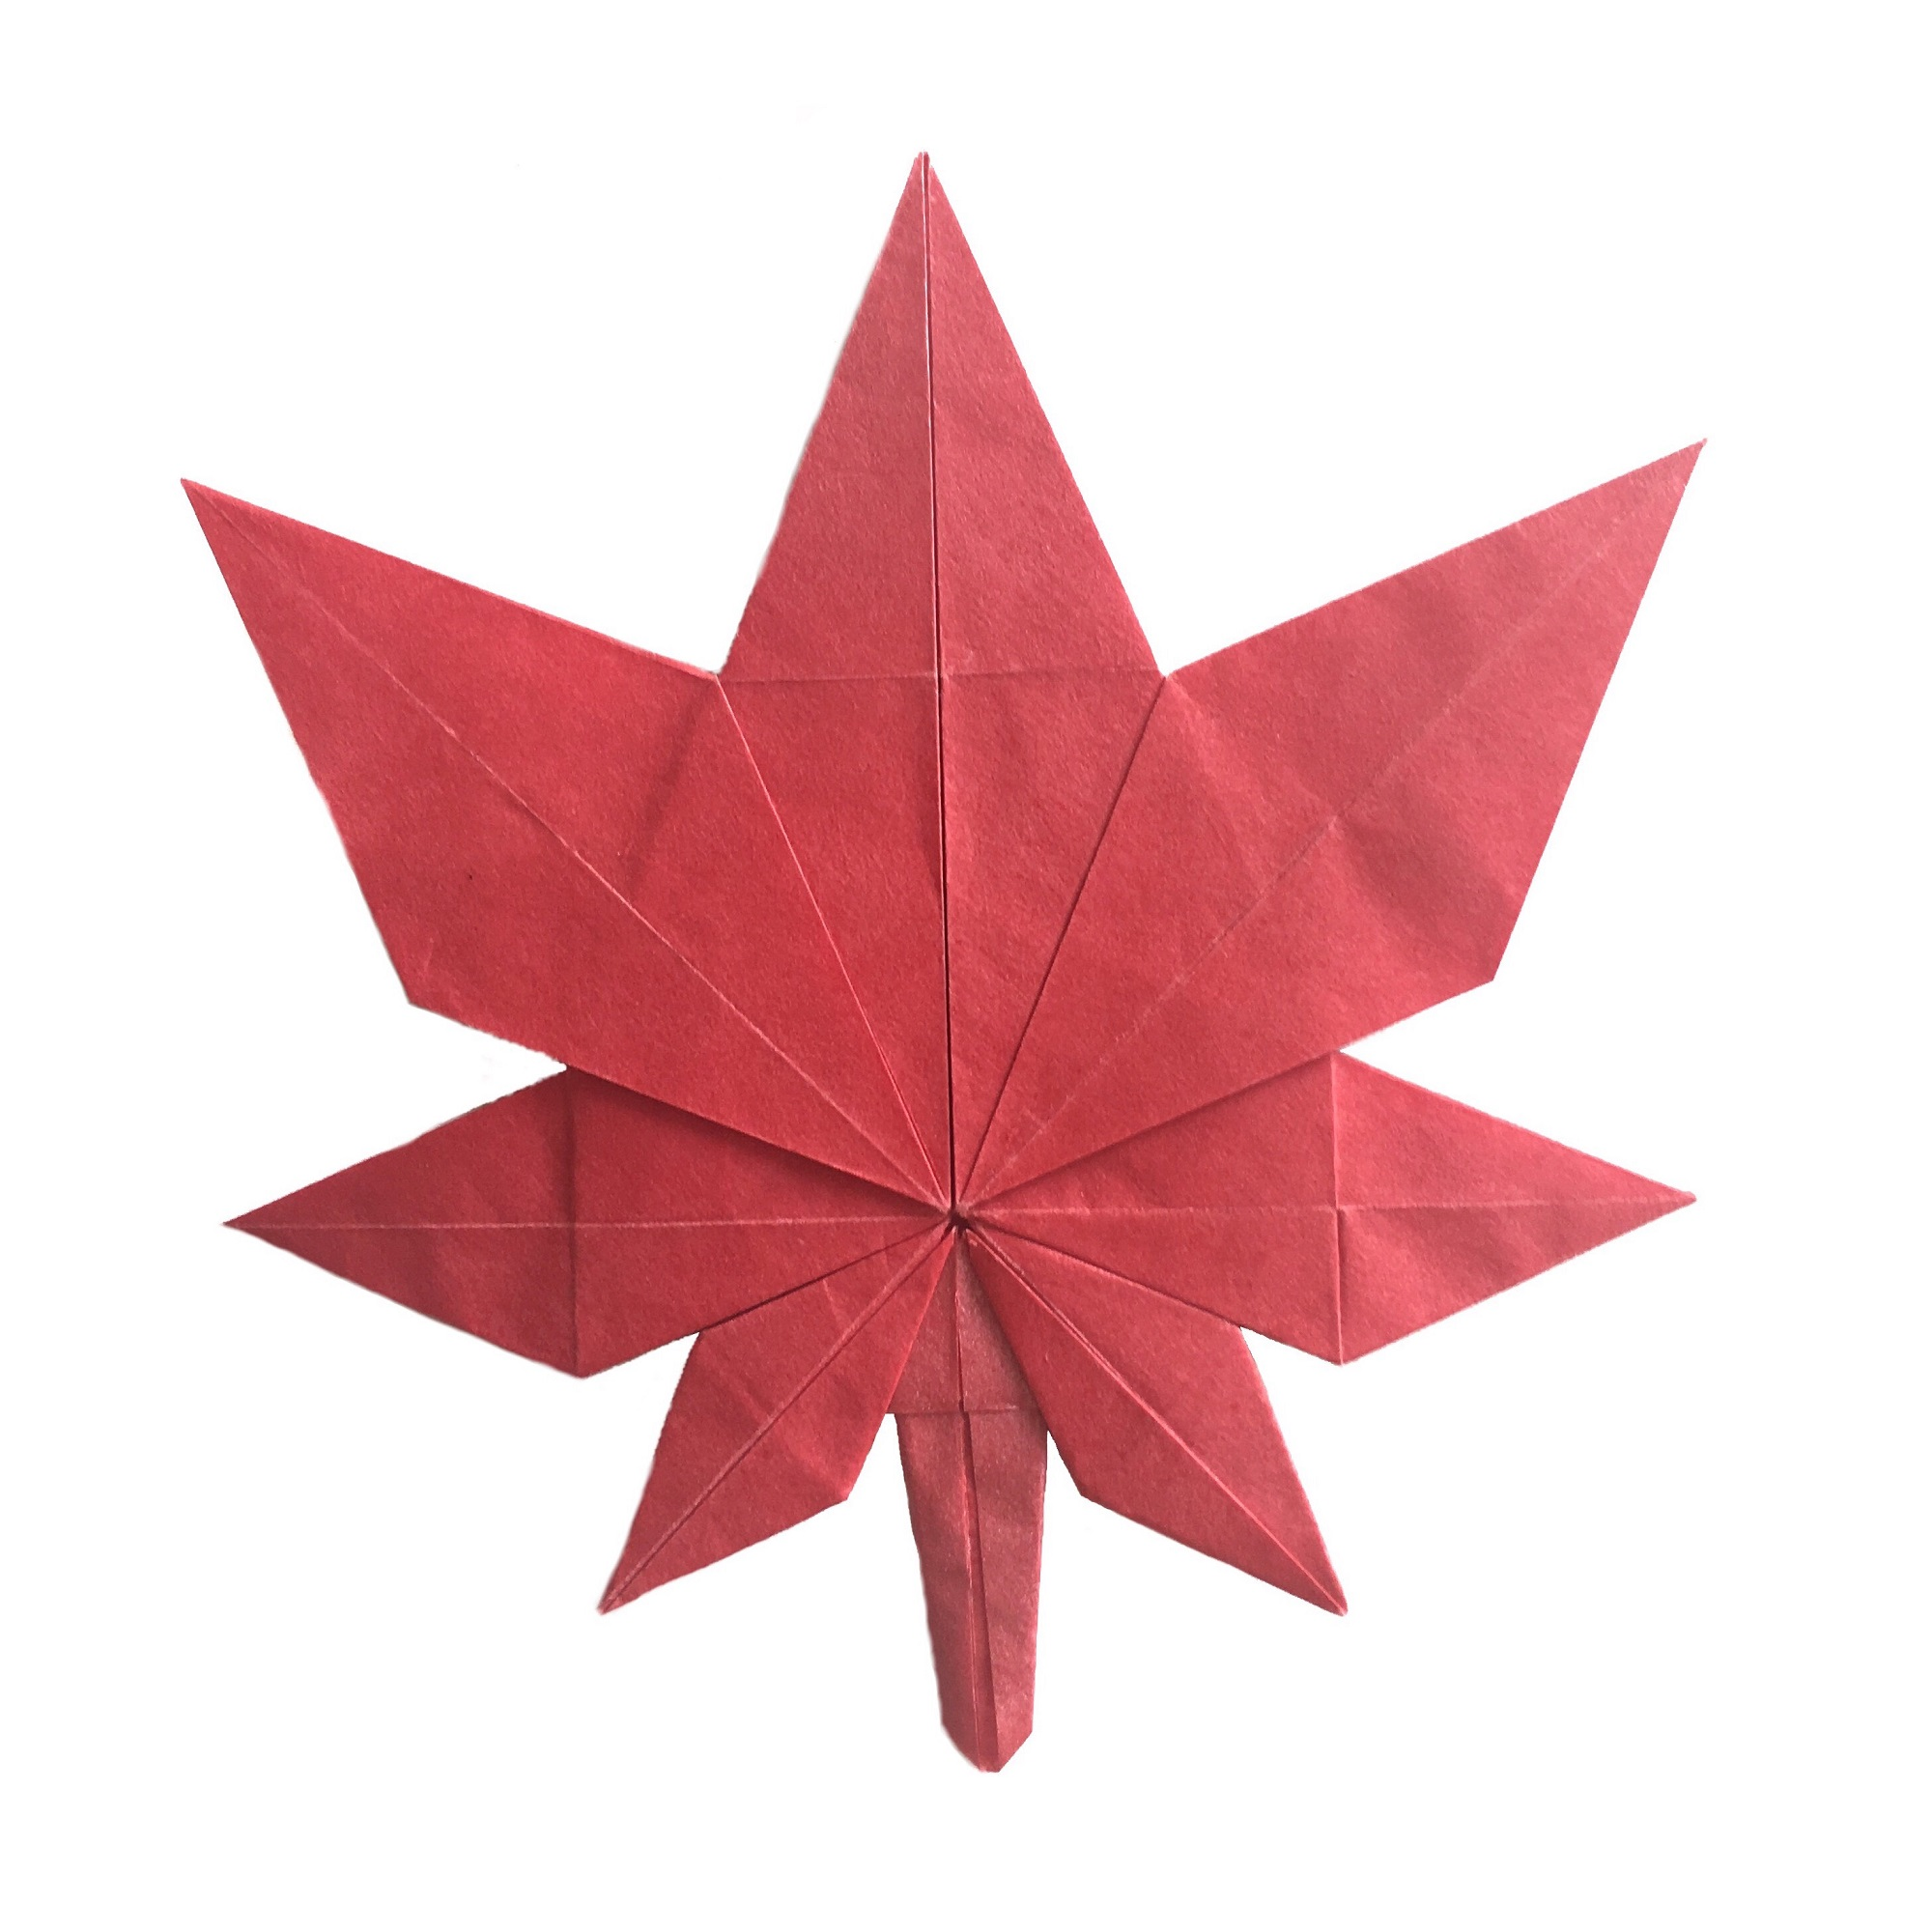 Easy Origami: Leaf | Origami guide, Origami easy, Origami leaves | 2000x2000